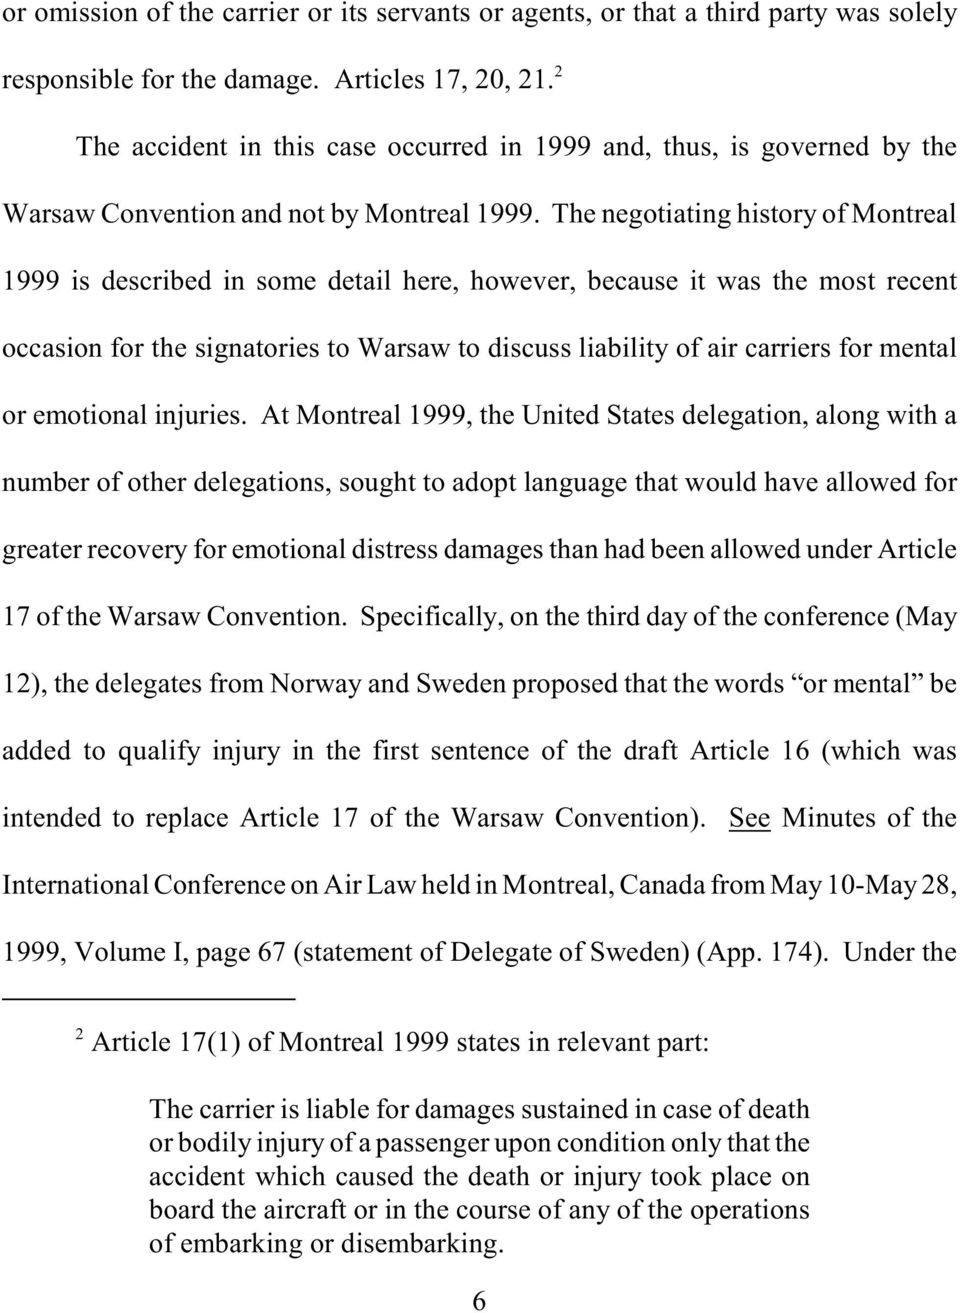 The negotiating history of Montreal 1999 is described in some detail here, however, because it was the most recent occasion for the signatories to Warsaw to discuss liability of air carriers for